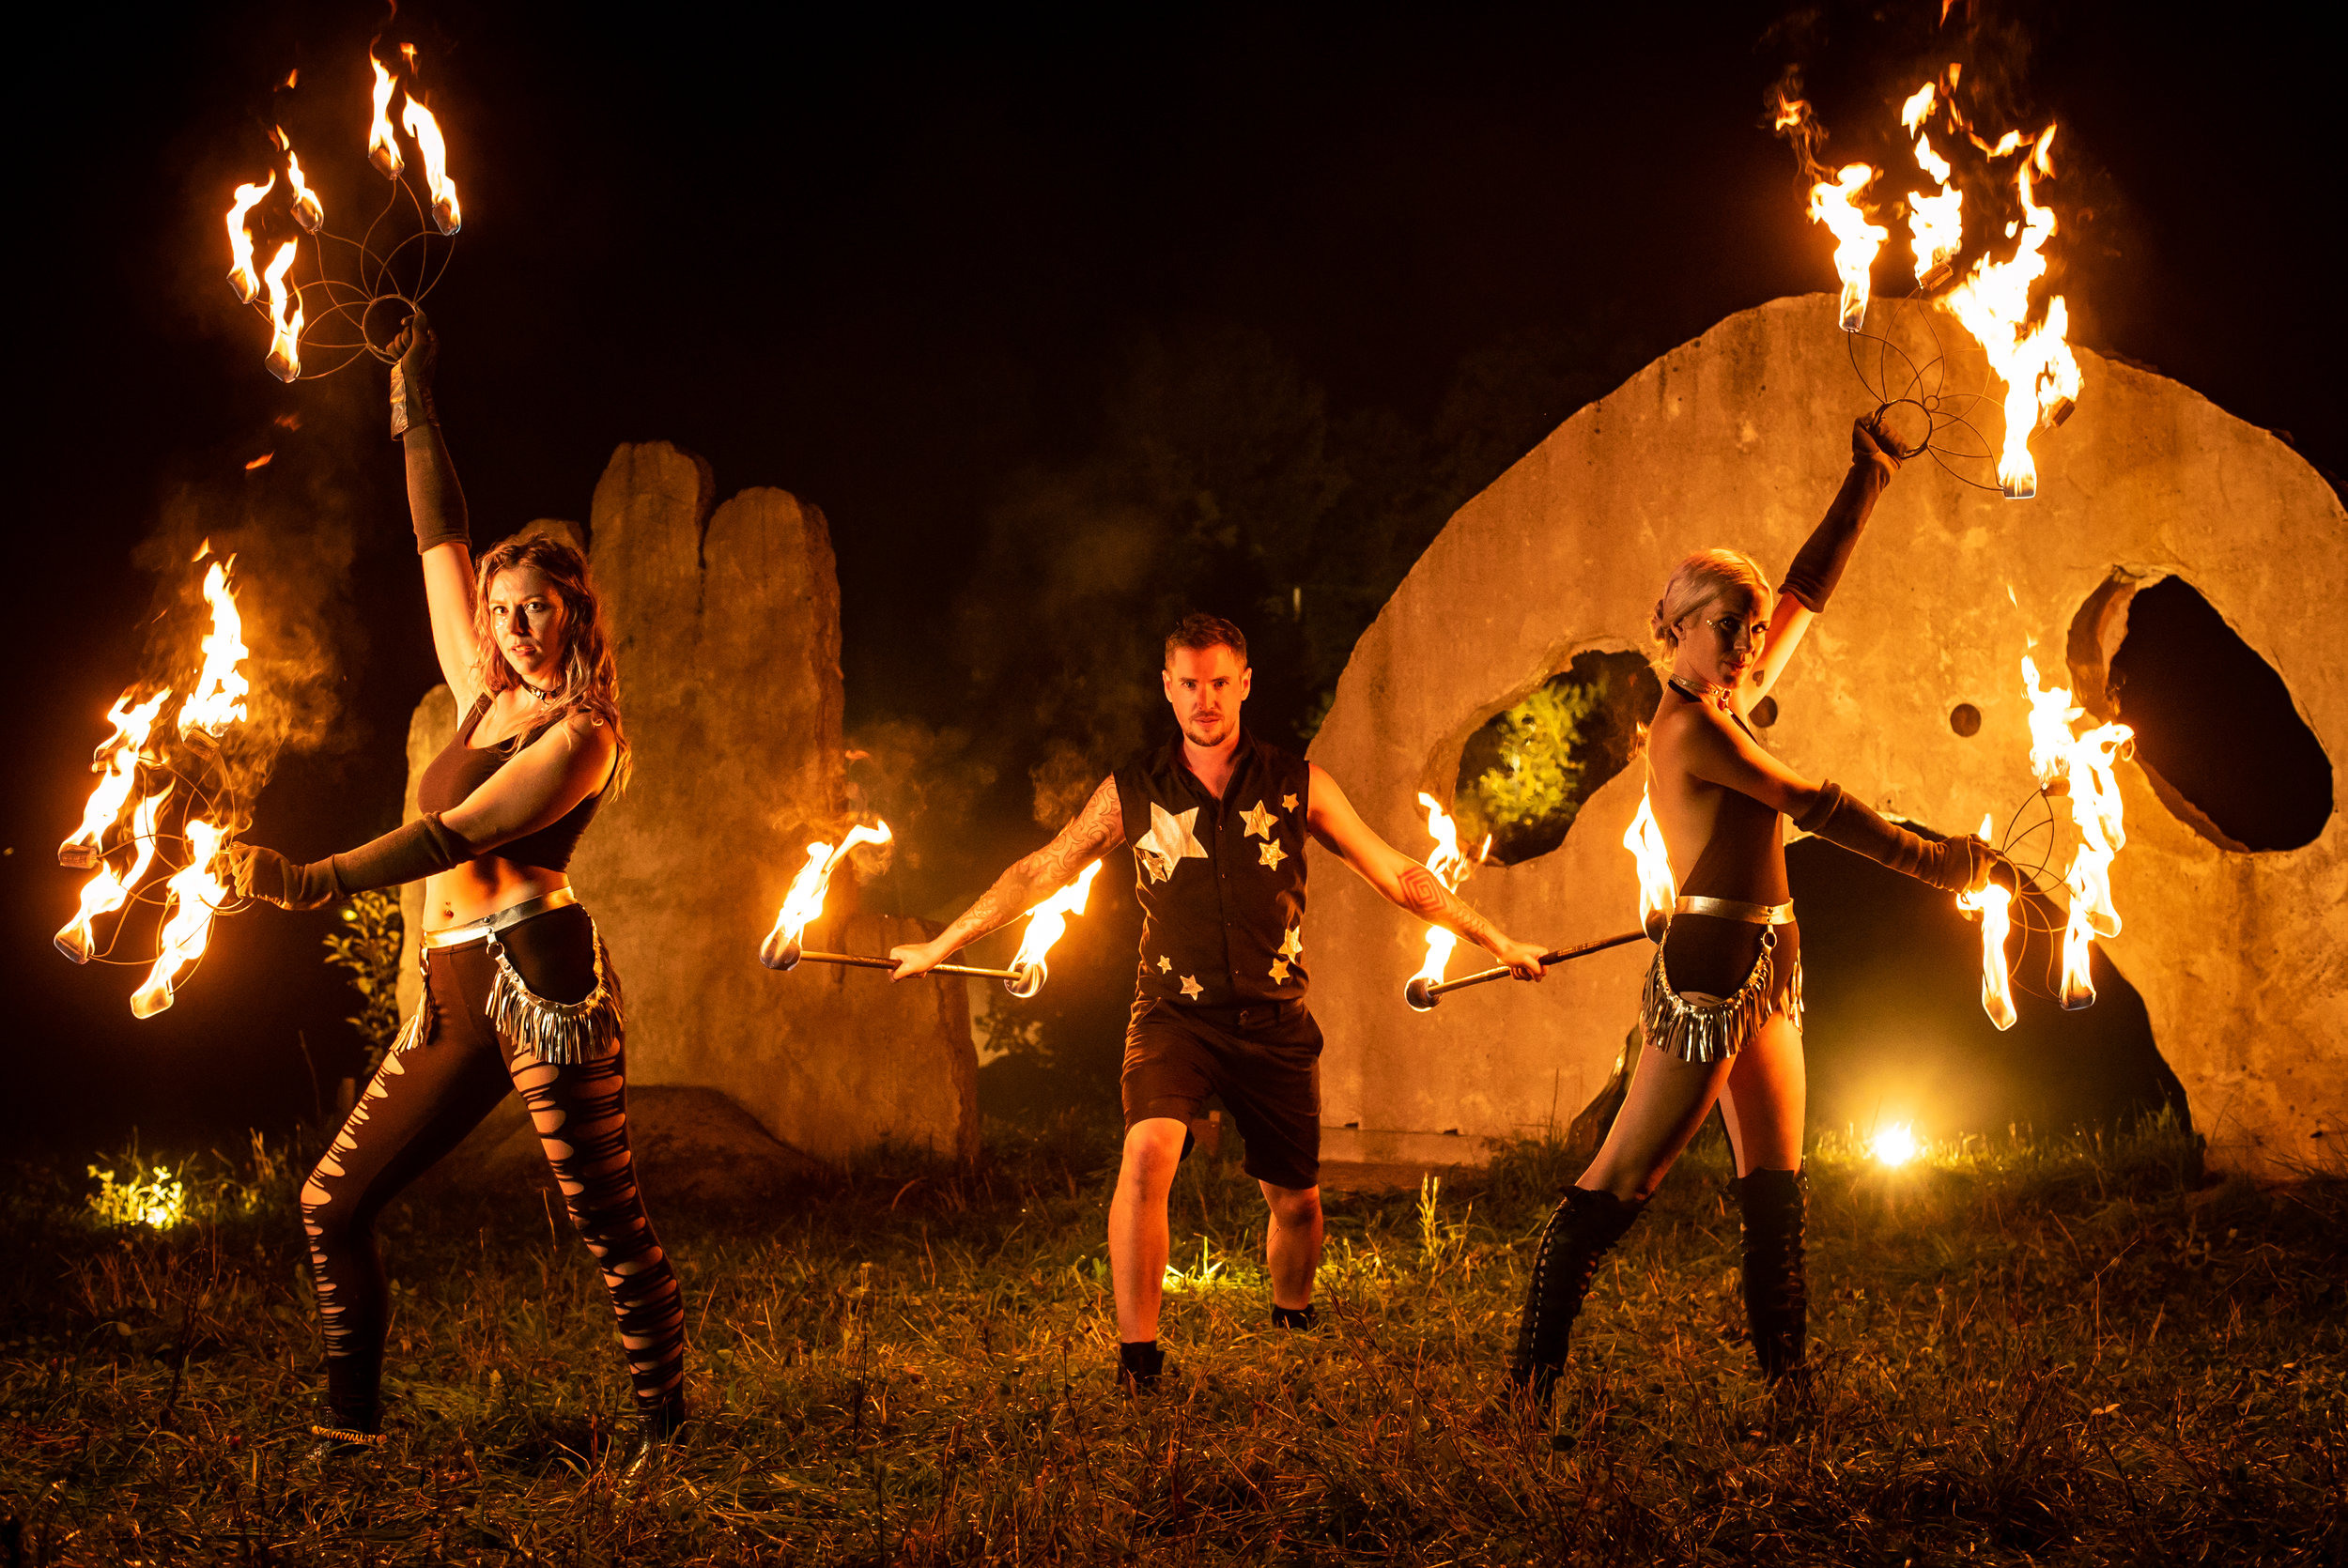 Fire performers troupe